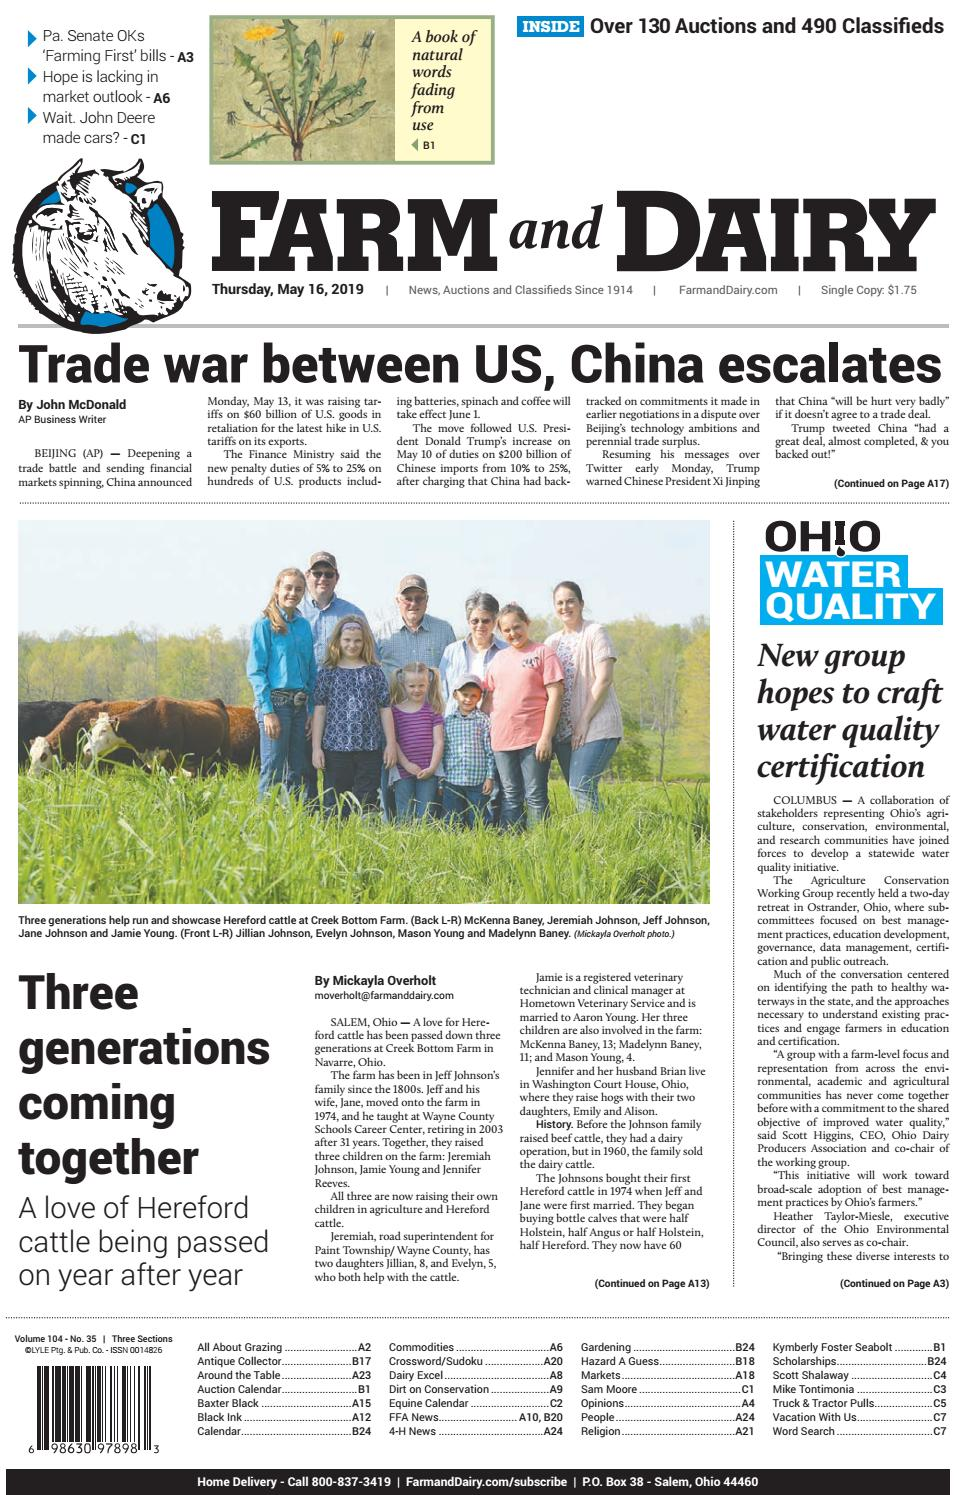 c2bb9a53a6b Farm and Dairy Newspaper 5/16/2019 by Farm and Dairy Newspaper - issuu